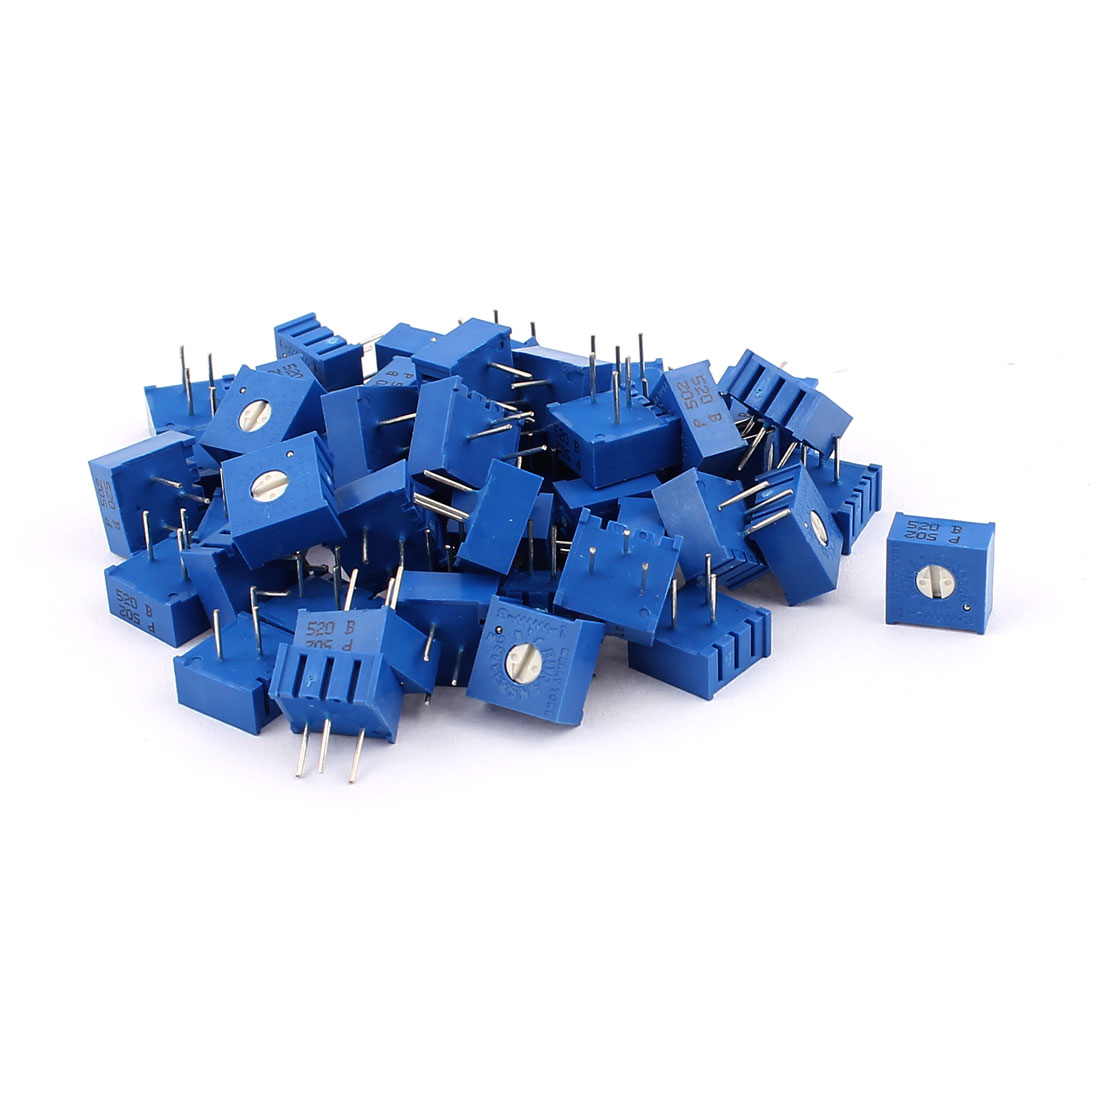 50Pcs Top Adjustment Trimmer Pot Potentiometer Resistors 5K Ohm 3386P